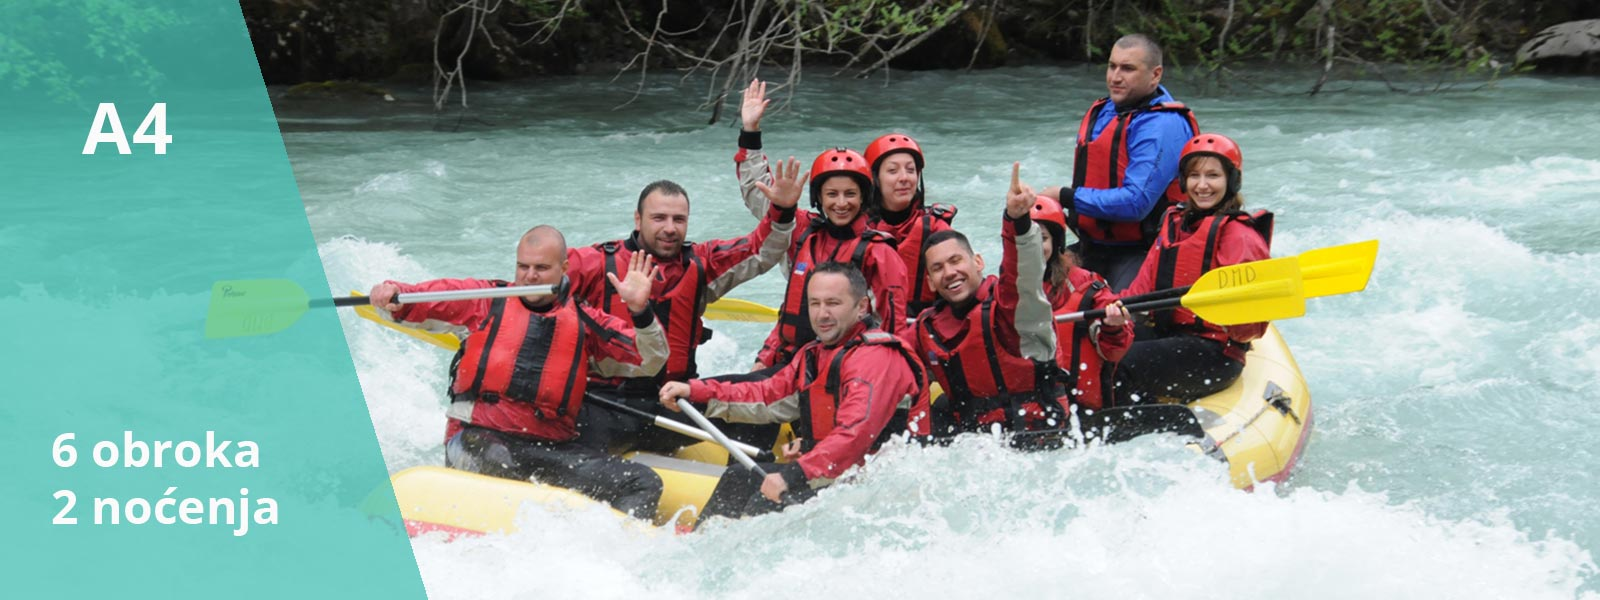 Rafting Adrenalin 4